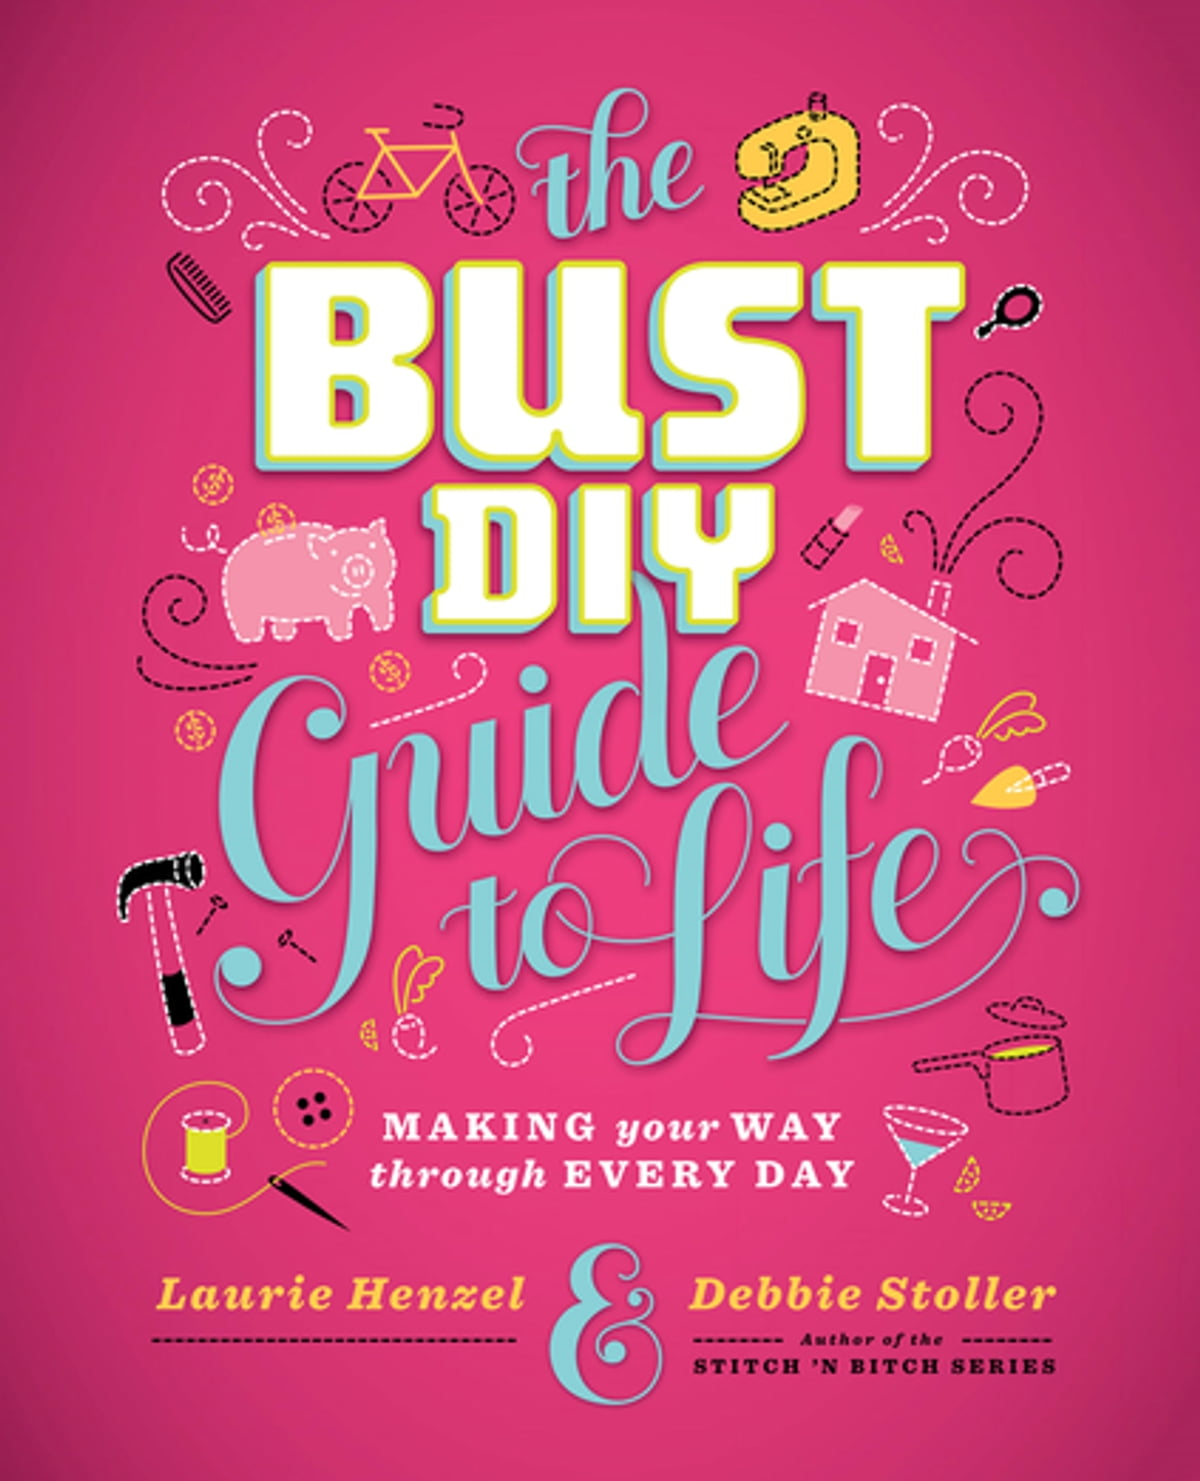 The bust diy guide to life ebook by laurie henzel 9781480494718.